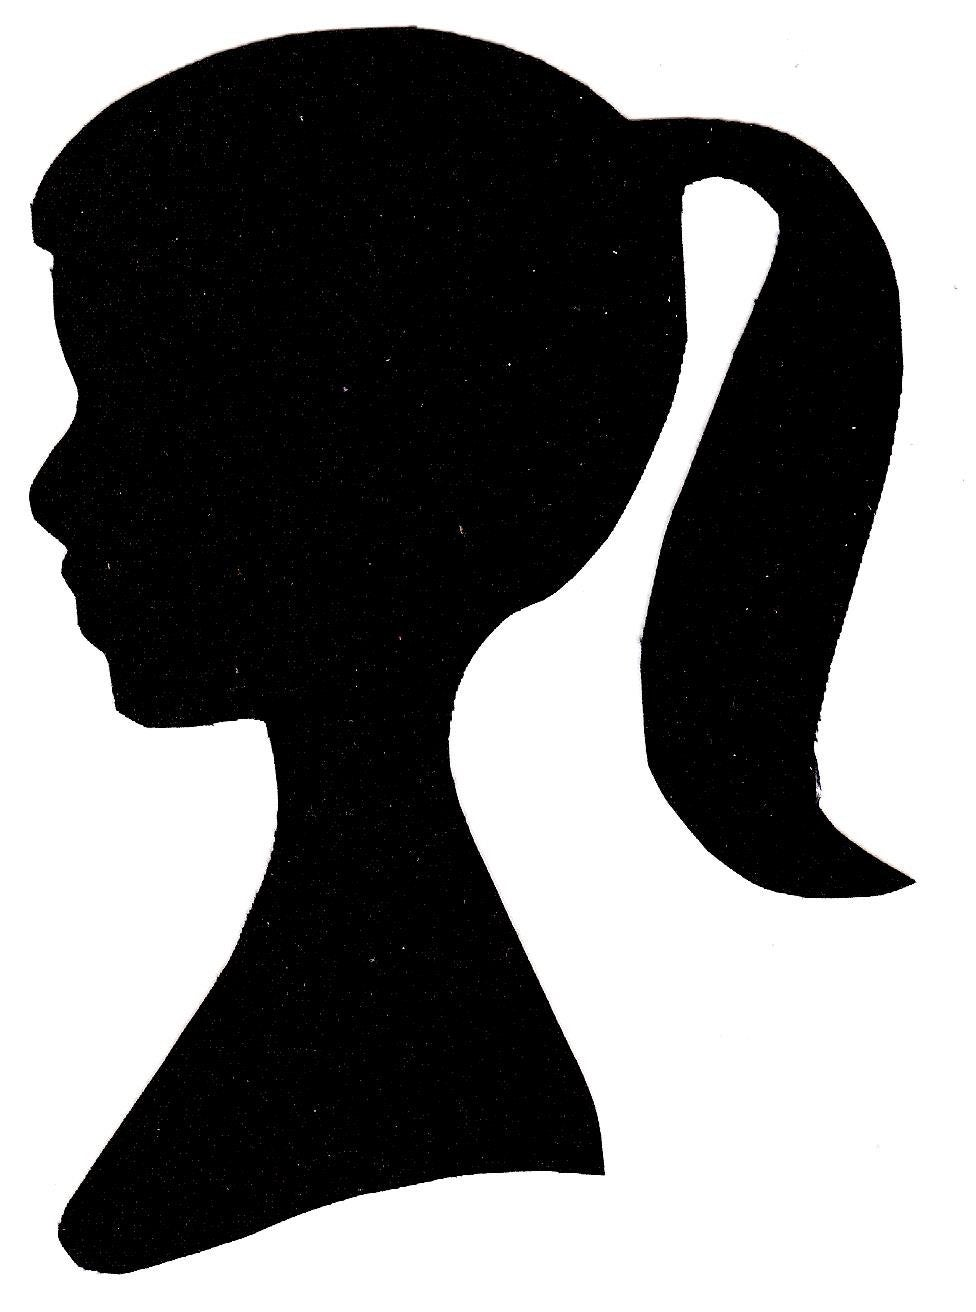 barbie silhouette barbie silhouette t shirt drawing clip art barbie png barbie silhouette